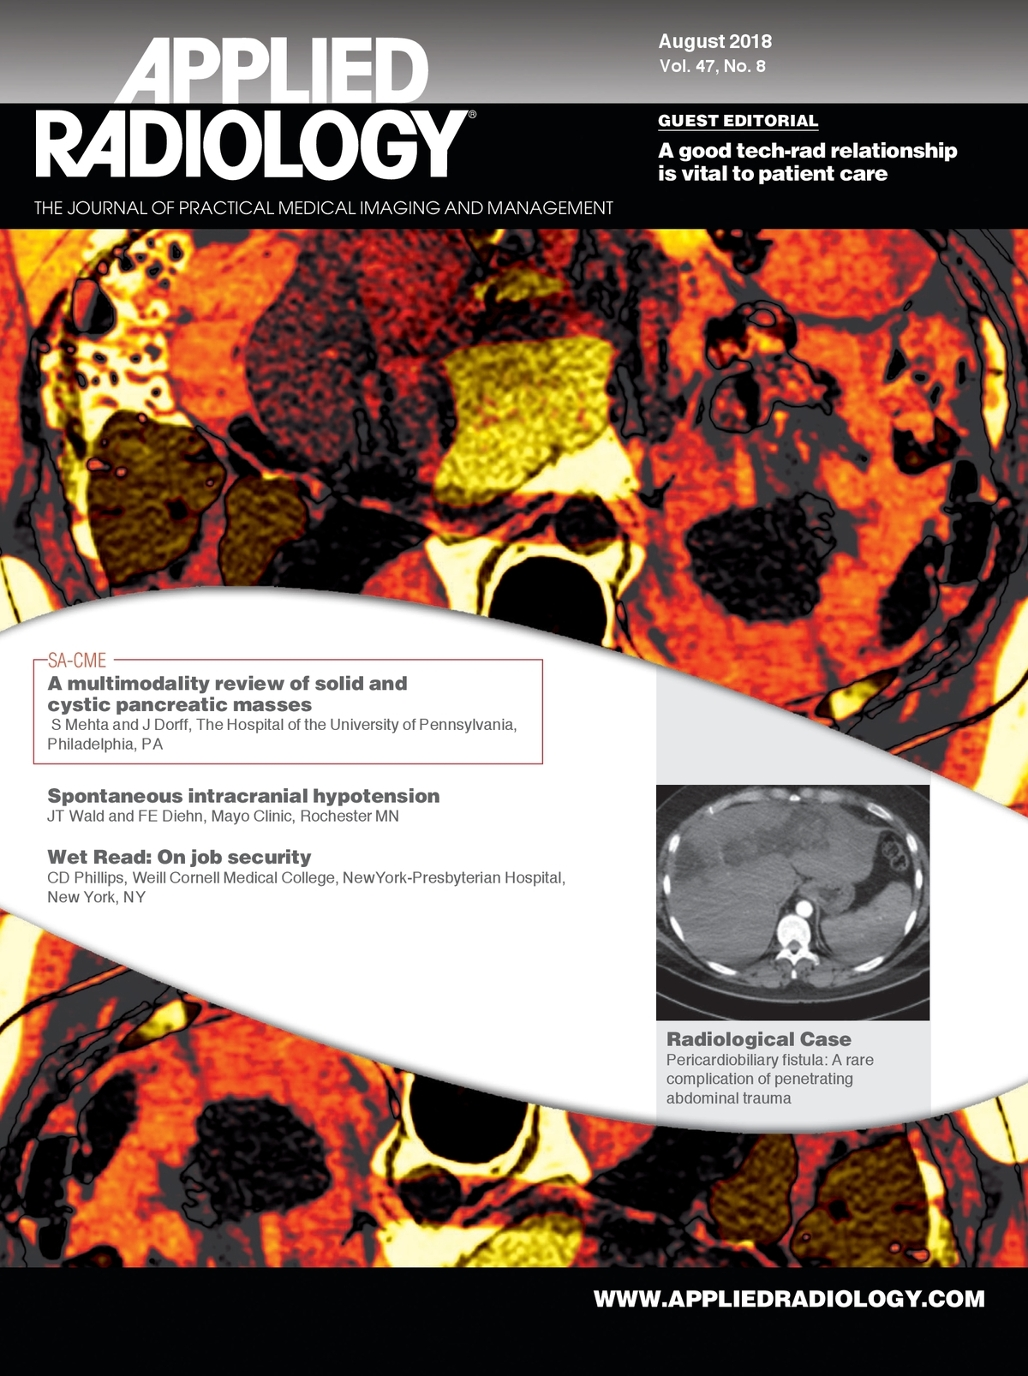 August 2018 Applied Radiology